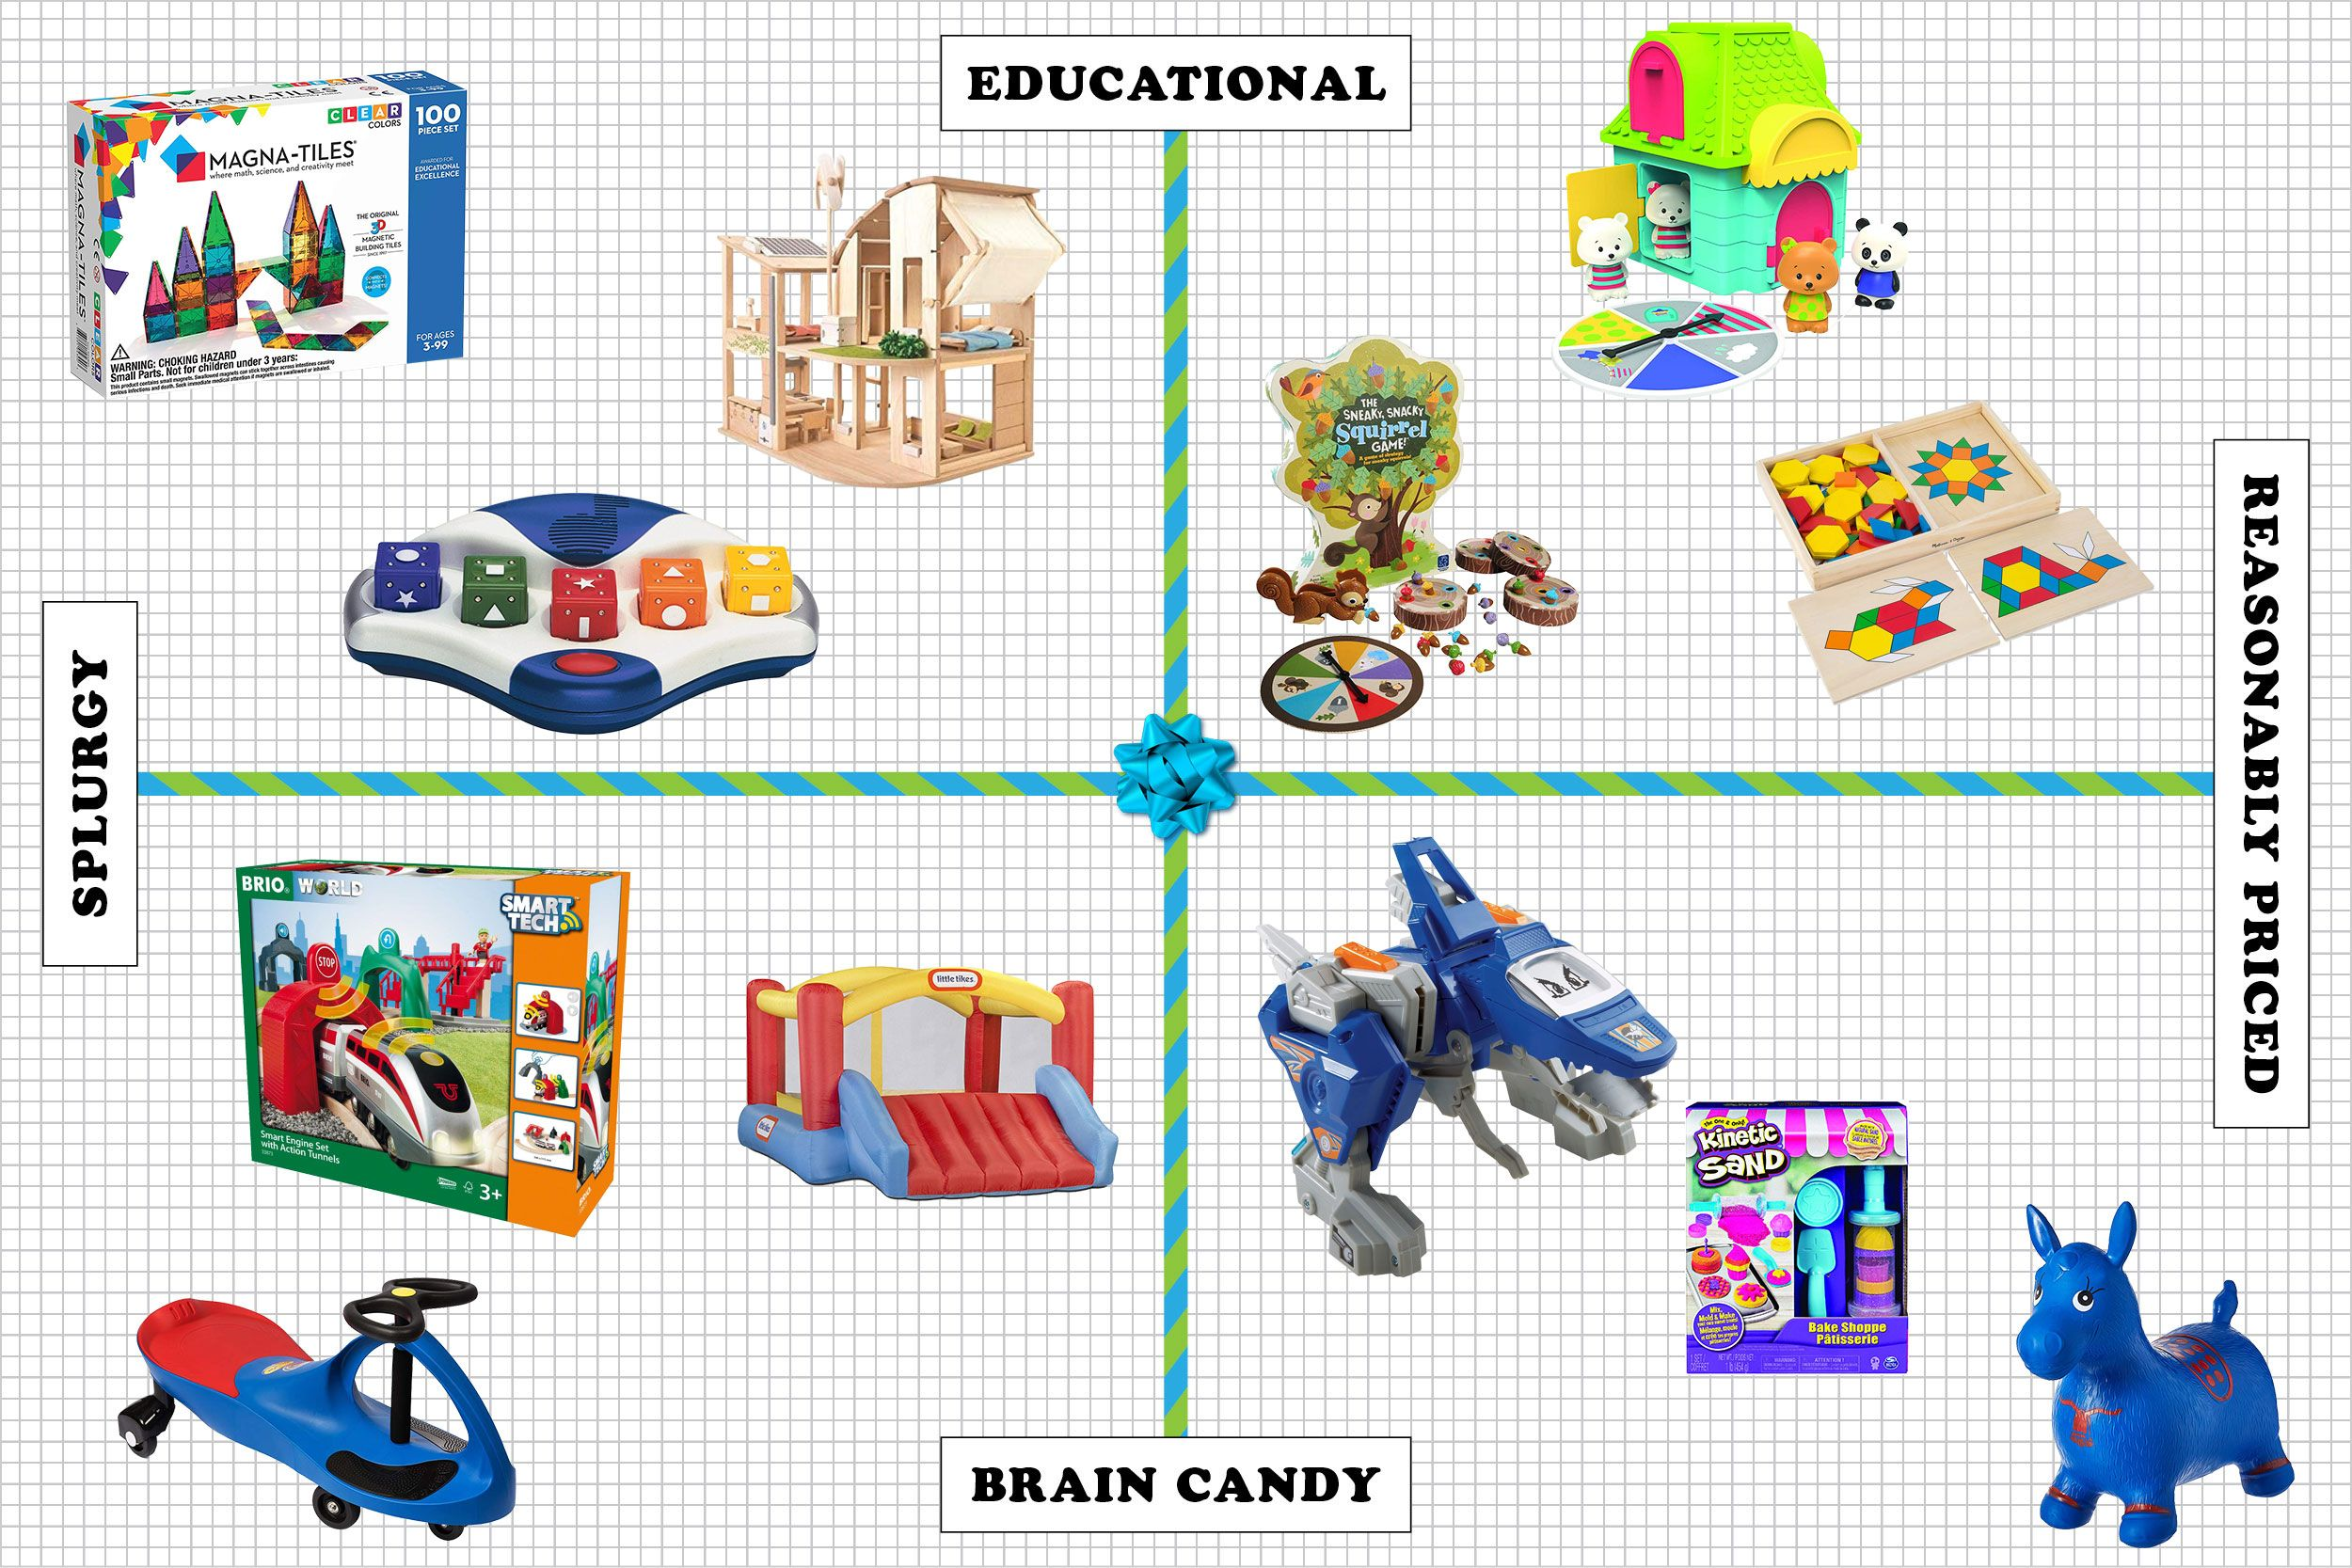 Christmas Toys 2020-22 From New York City Kiddie City Toys In The Mall 25 Best Toys for 3 Year Olds 2020   The Strategist   New York Magazine